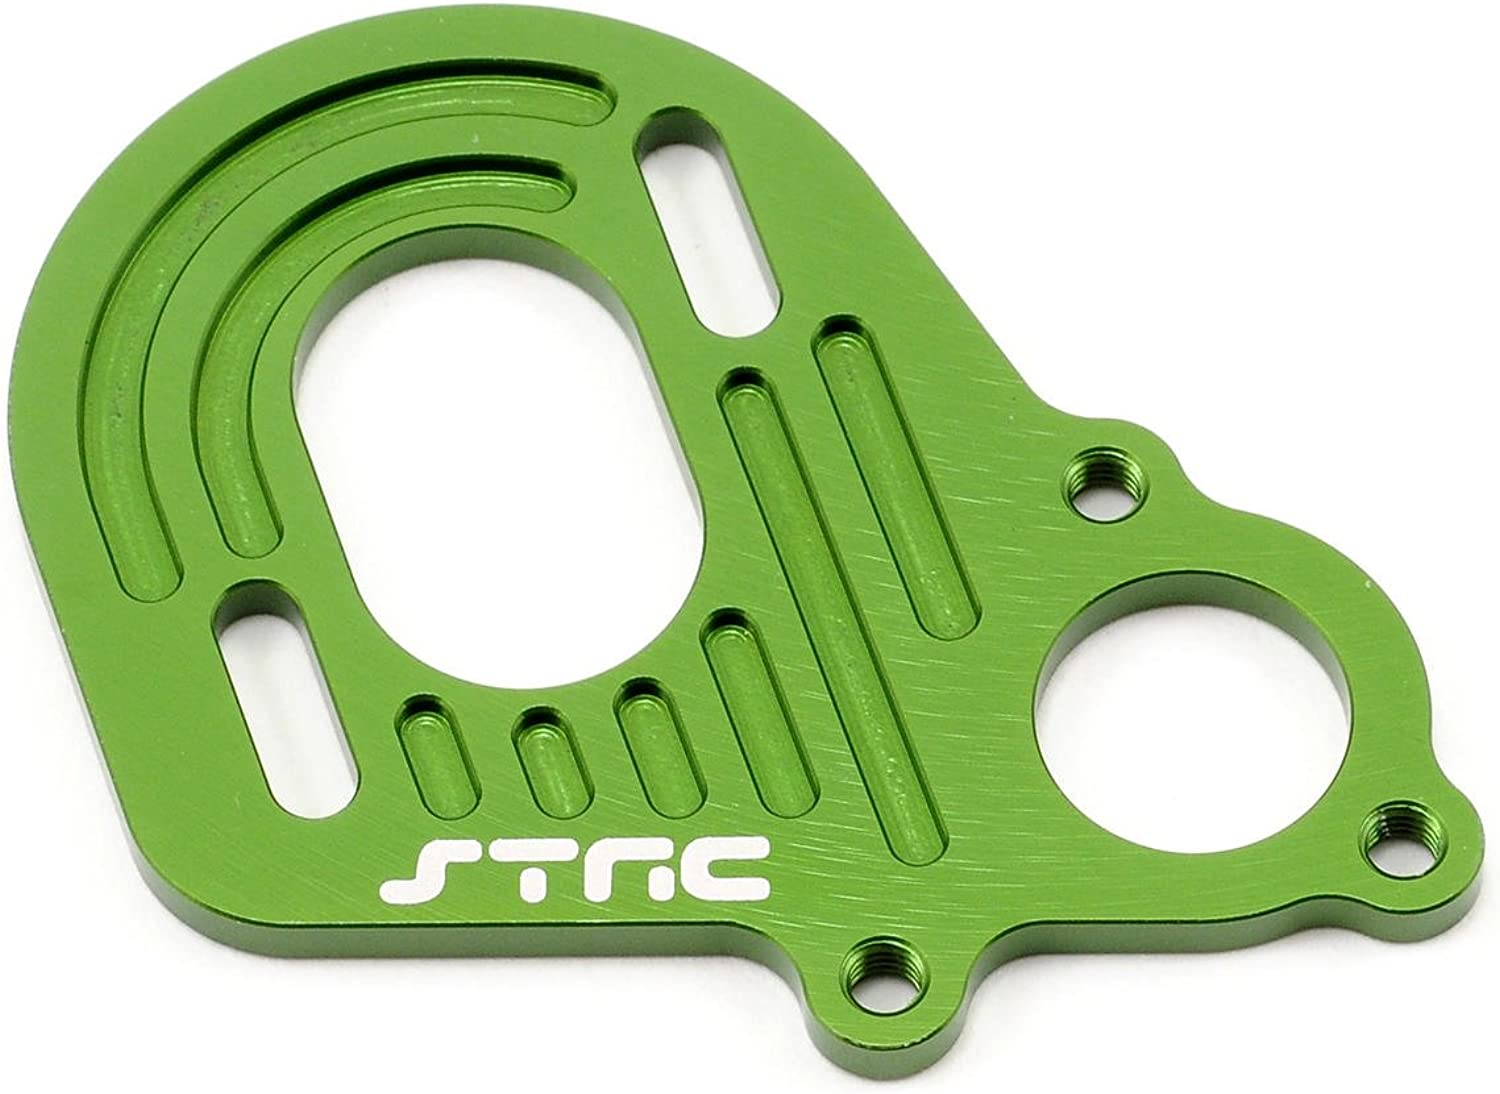 ST Racing Concepts STA30491G Aluminum Motor Plate with Longer Motor Screw Slots for The Axial Wraith, Green